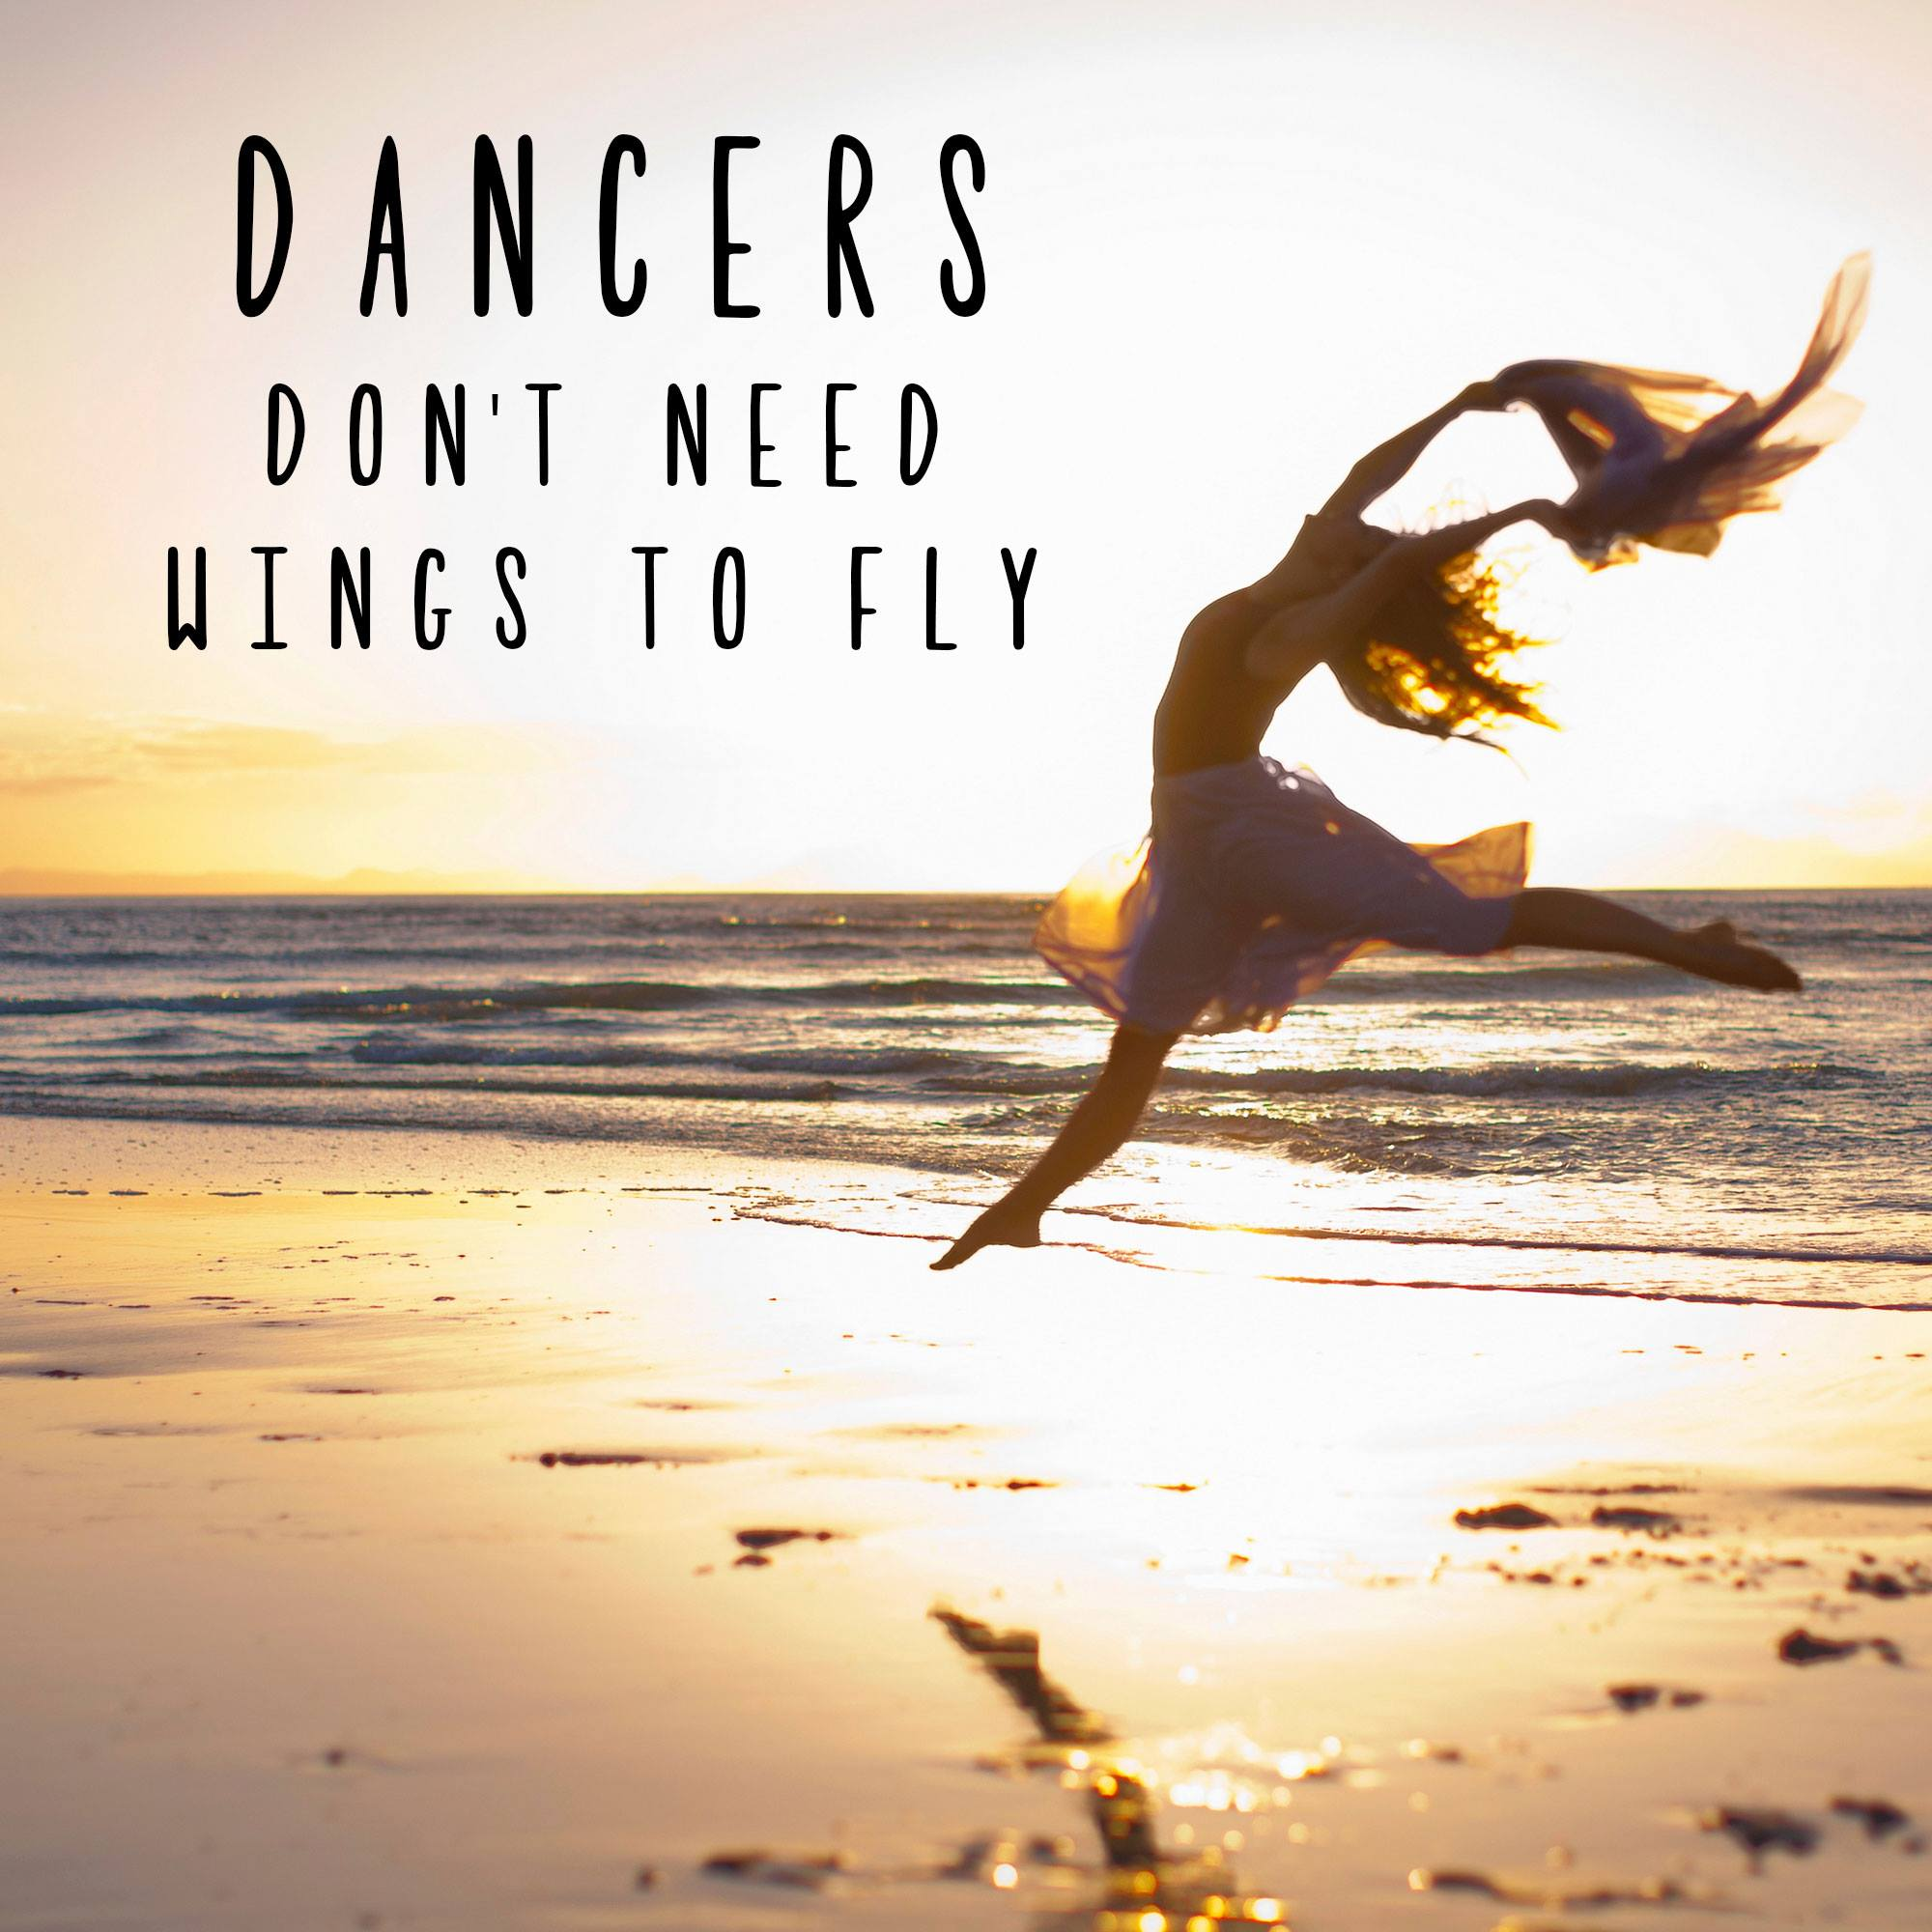 Best Dance Quotes: Top 60 Motivational Dance Quotes And Sayings, Photos And